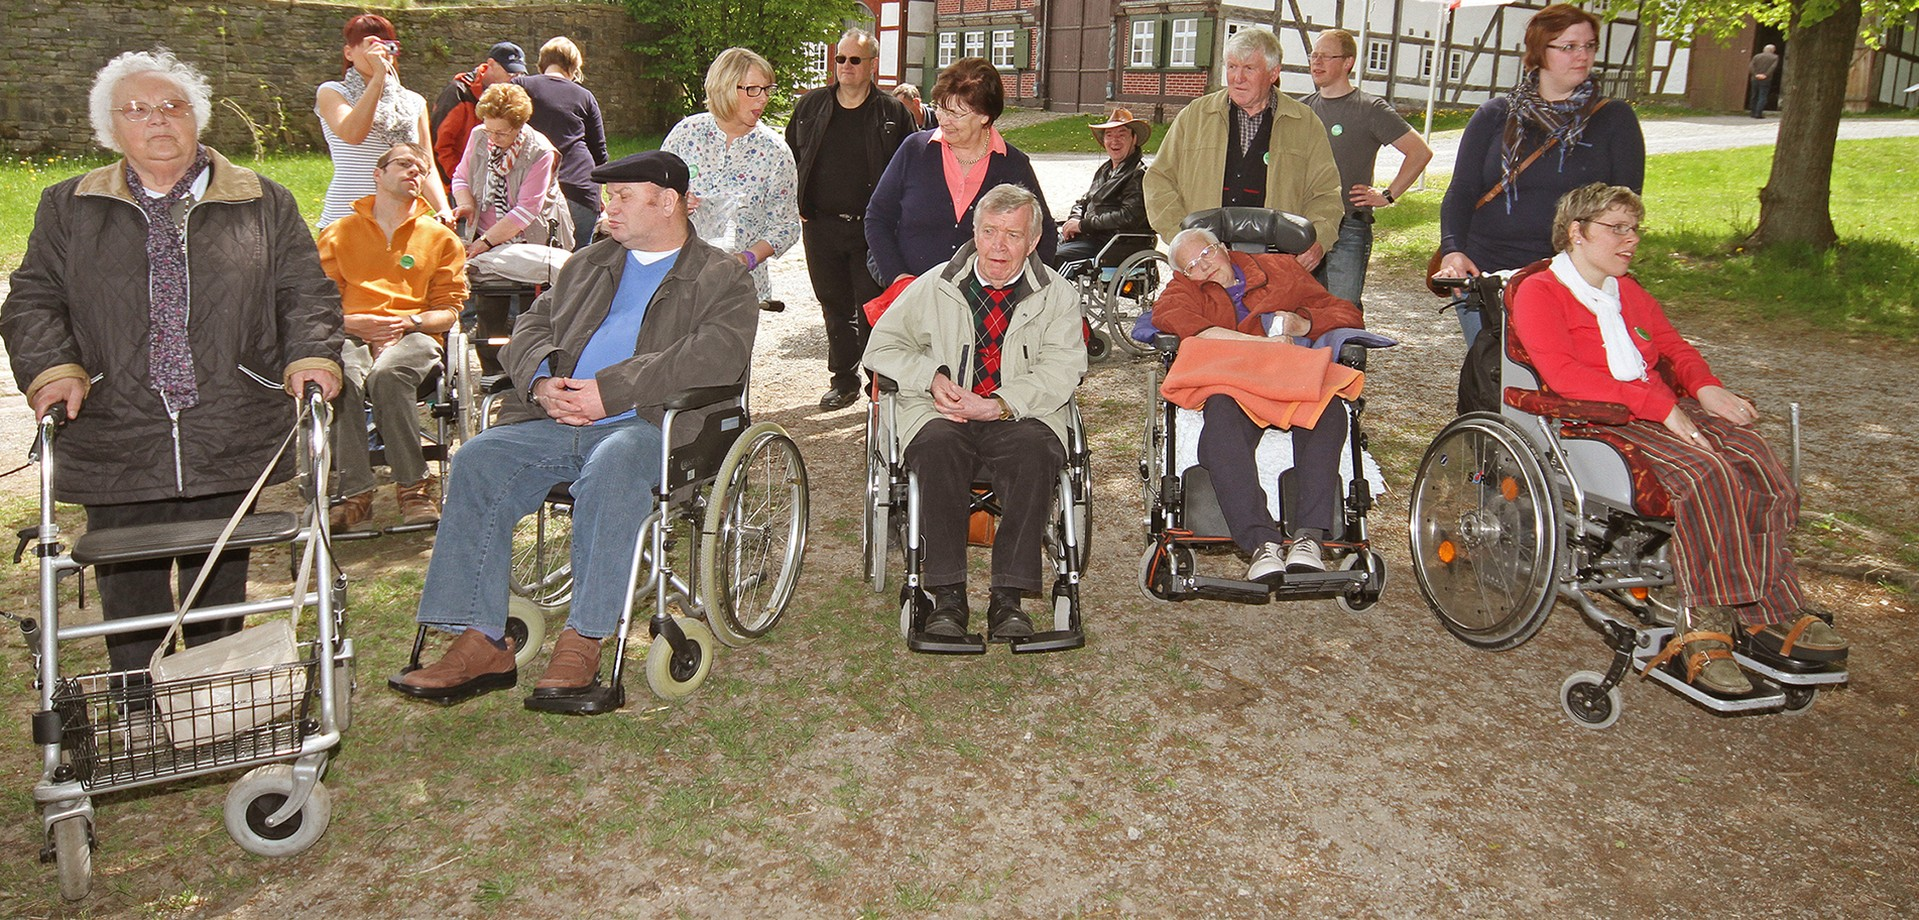 A group of 18 adults. Some are a bit older. Some use a walker or sit in a wheelchair.